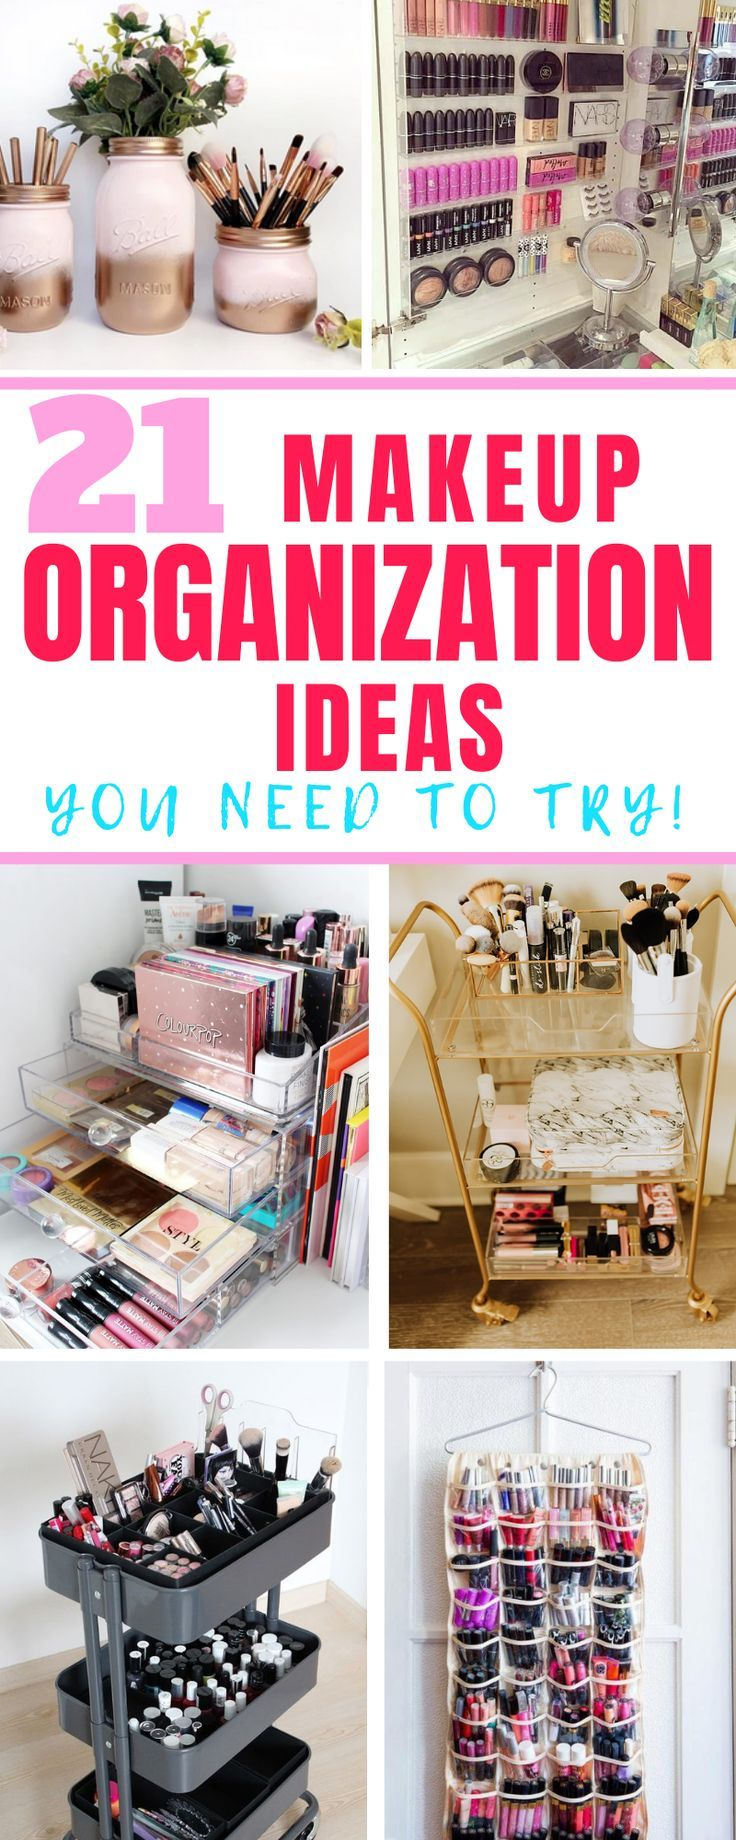 21 Creative Makeup Organization Ideas to Declutter Your Space -   18 diy Room organizers ideas